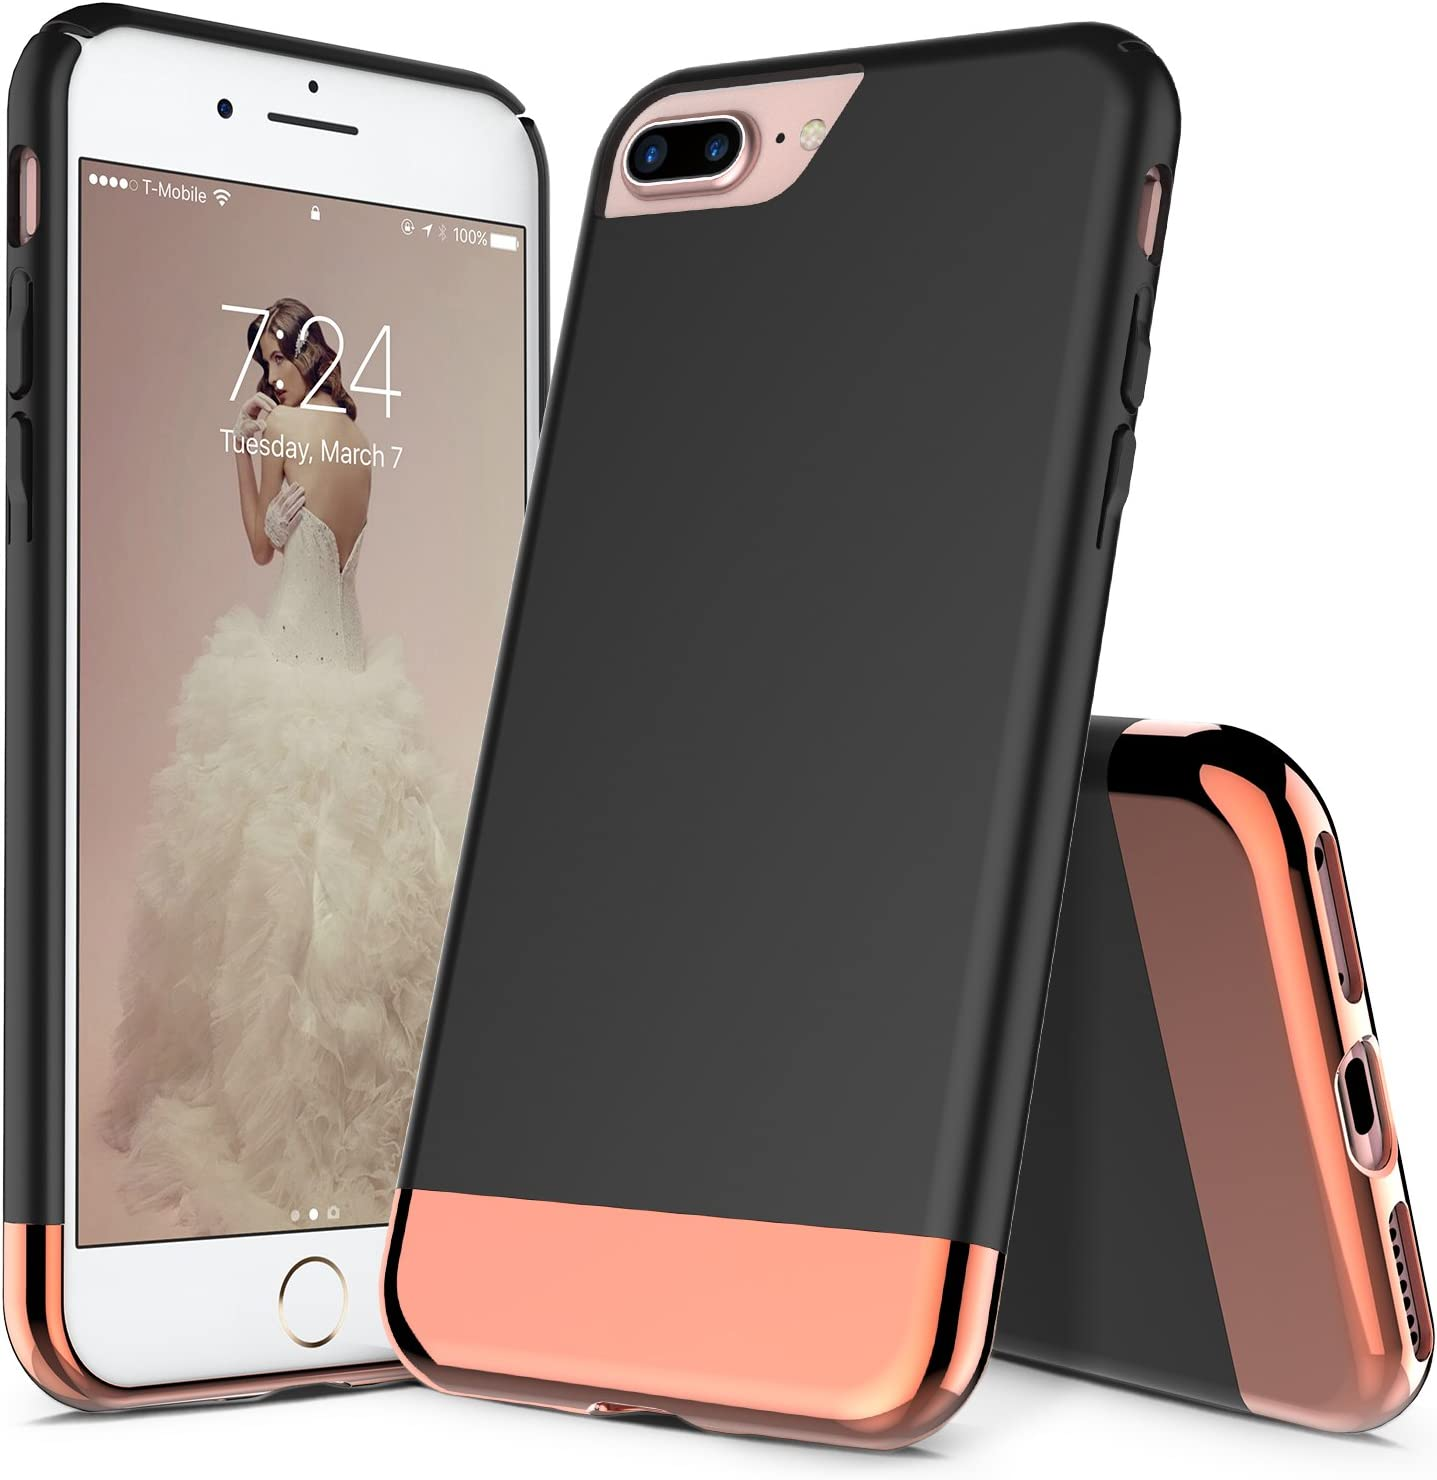 Amazon Com Ranz Iphone 7 Plus Case Iphone 8 Plus Case Black With Rose Gold Protective Slider Style Scratch Proof Hard Cover For Apple Iphone 7 Plus Iphone 8 Plus